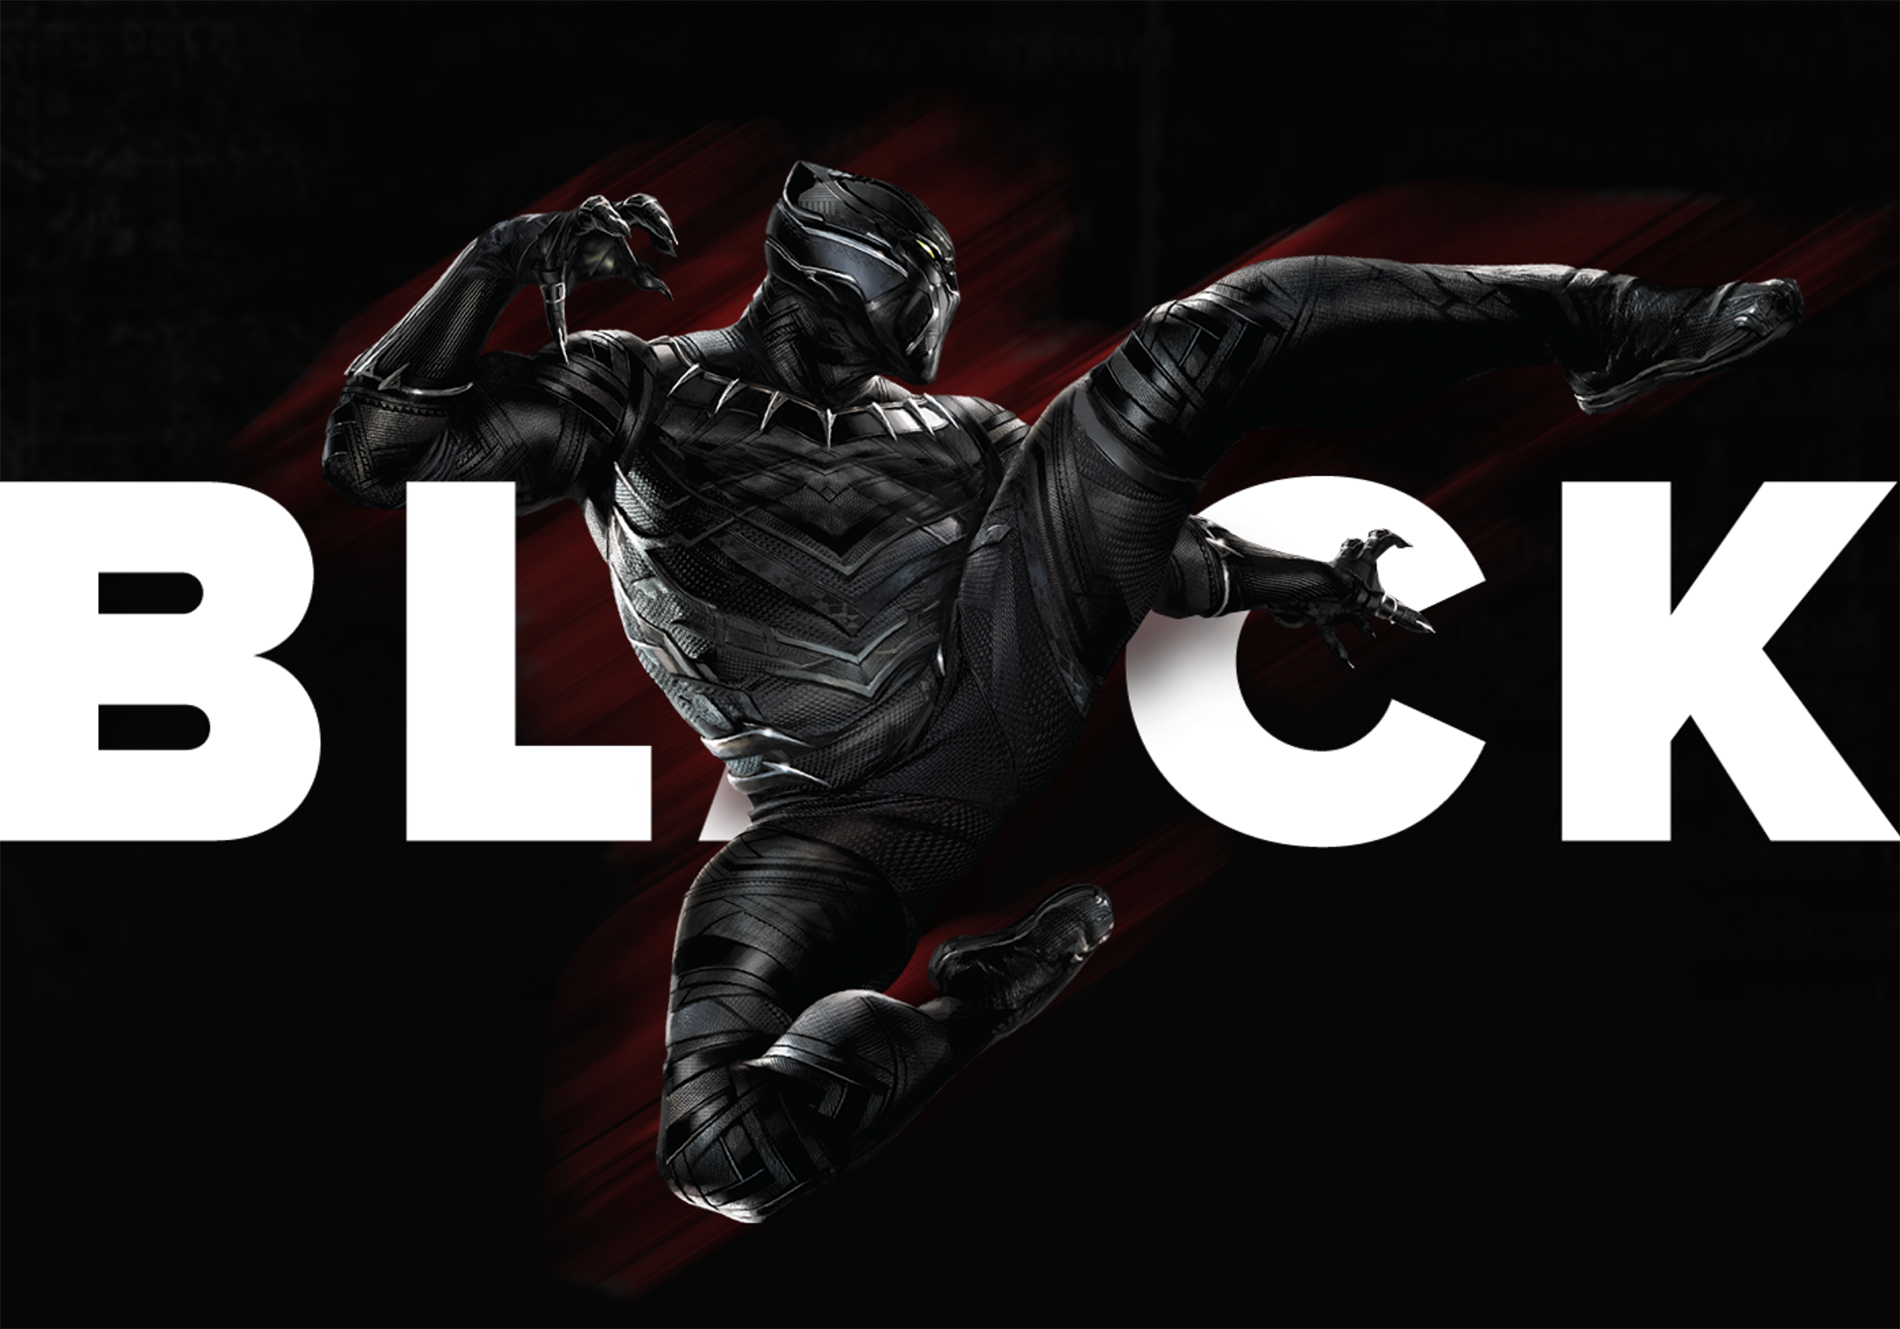 Awesome Web Design for Marvel Black Panther